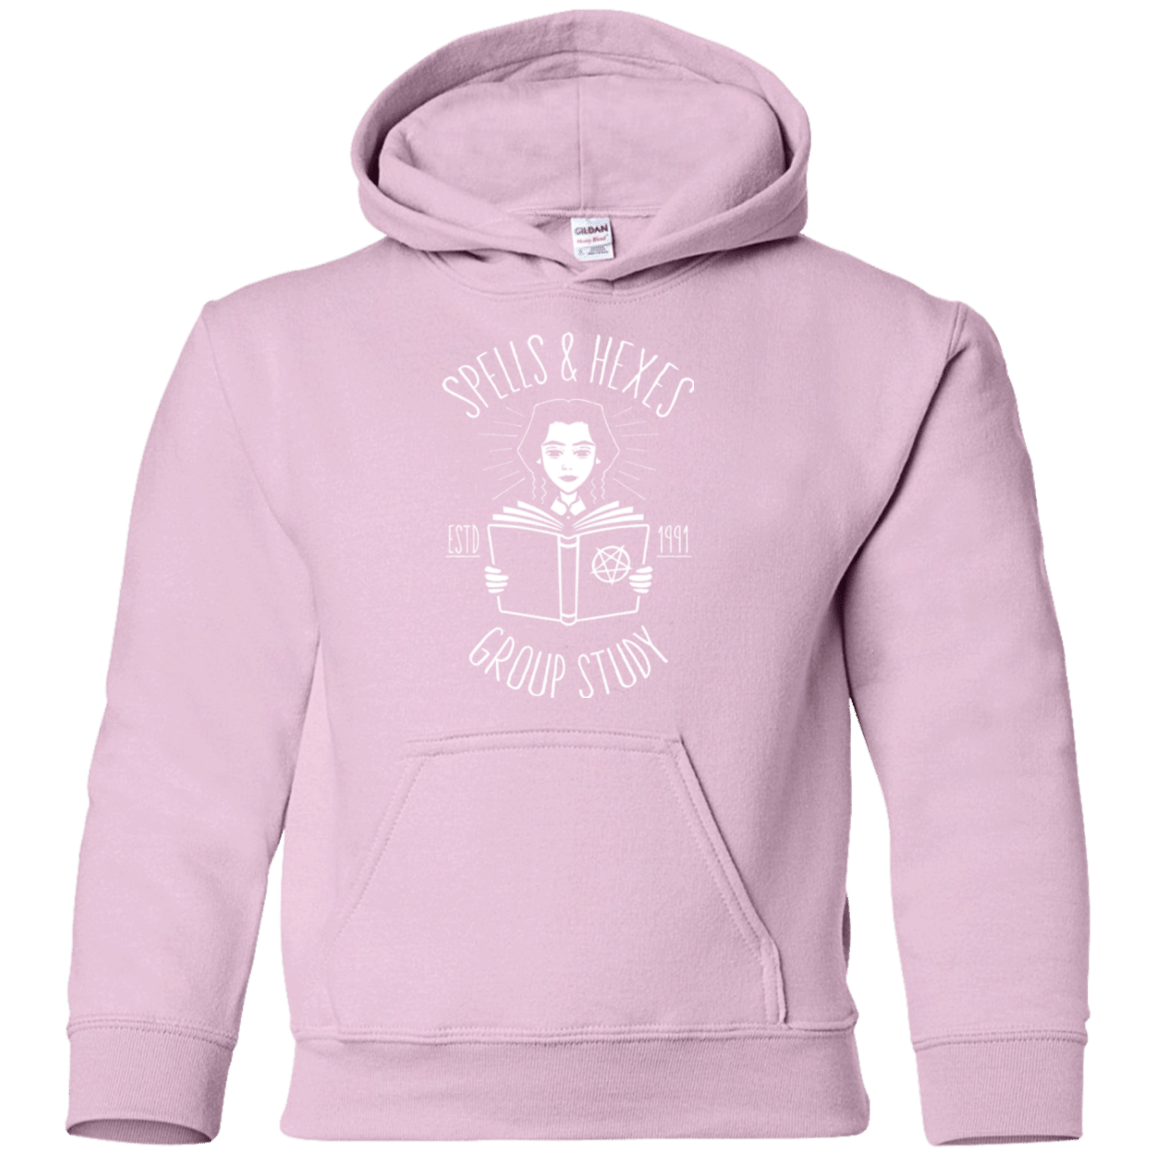 Sweatshirts Light Pink / YS Spells and Hexes Group Study Youth Hoodie